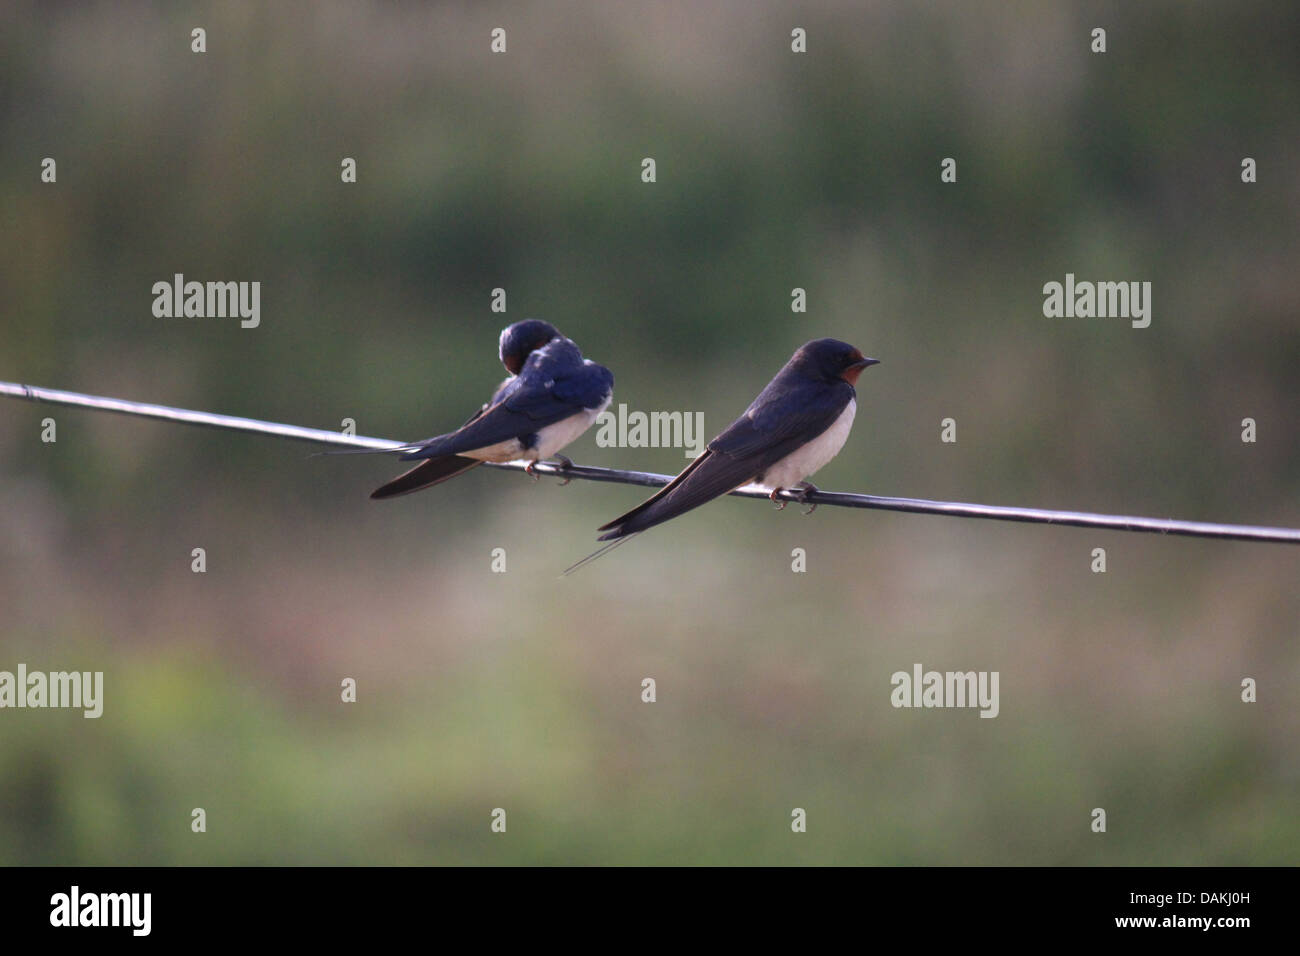 Birds On A Wire Stock Photos & Birds On A Wire Stock Images - Alamy